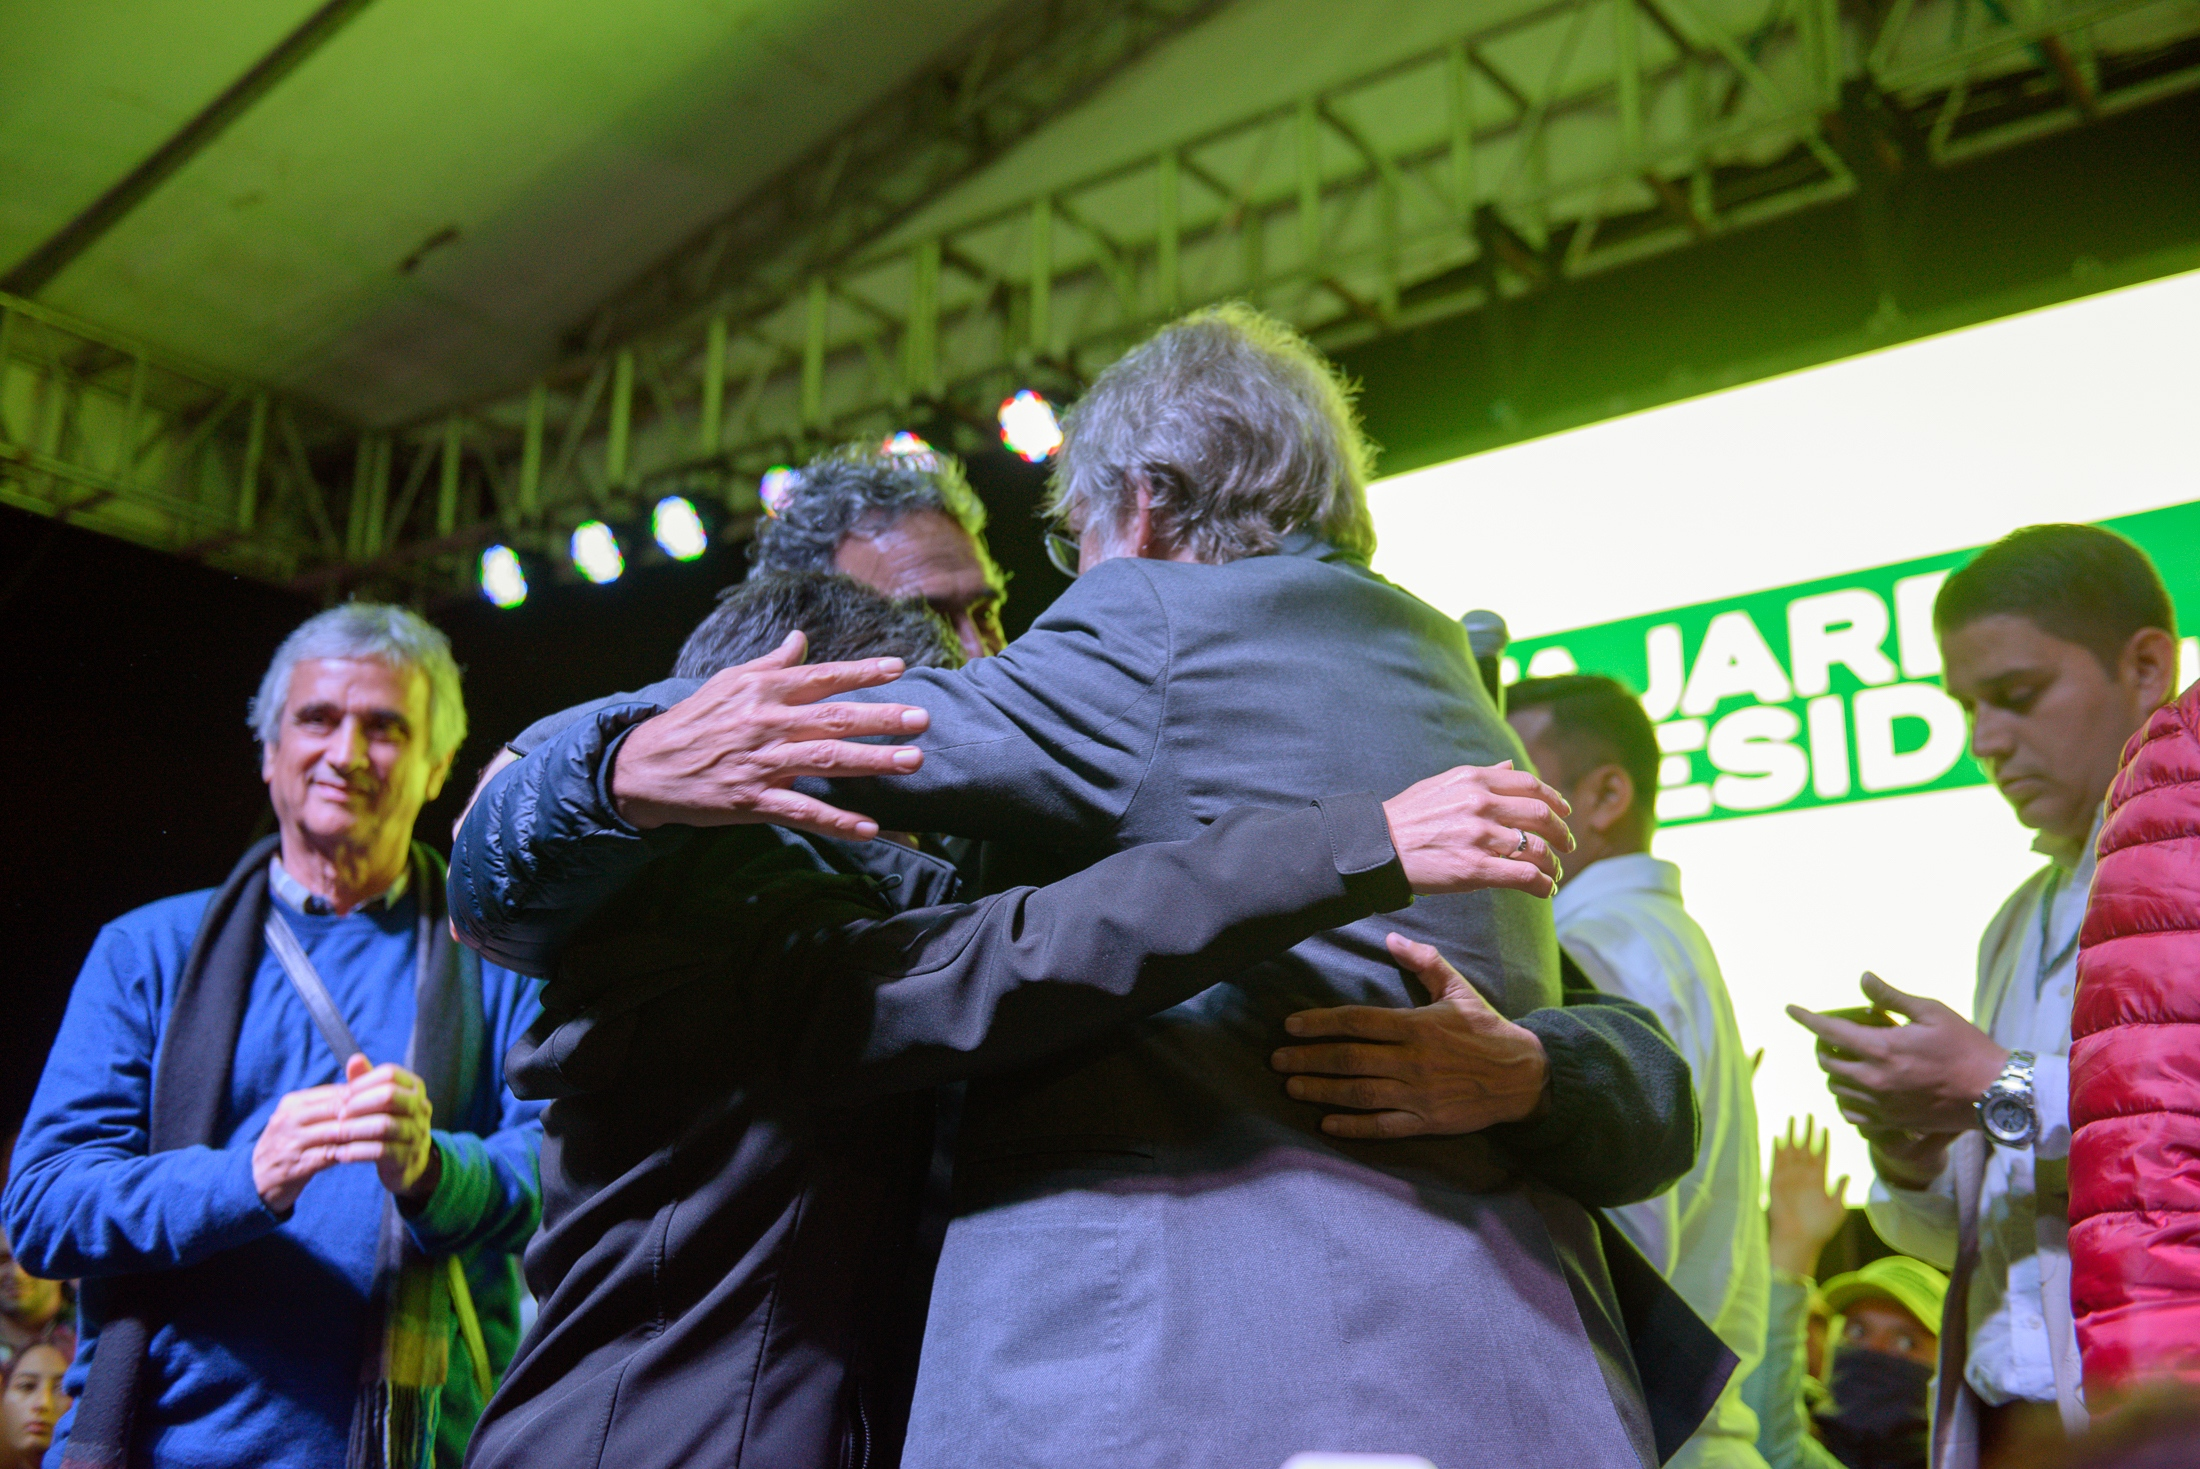 (EN) May 27, 2018 - Bogota, Colombia. Sergio Fajardo, presidential candidate, Claudia López, vice-presidential candidate and Antanas Mockus, hug on stage after the results of the first round of 2018 presidential elections, leaving Sergio Fajardo third in place. (ES) 27 de mayo 2018 - Bogotá, Colombia. Sergio Fajardo,  candidato a la predidencia, Claudia López, candidata a la vice-presidencia y Antanas Mockus se abrazan al término de la primera vuelta de elecciones presidenciales 2018.